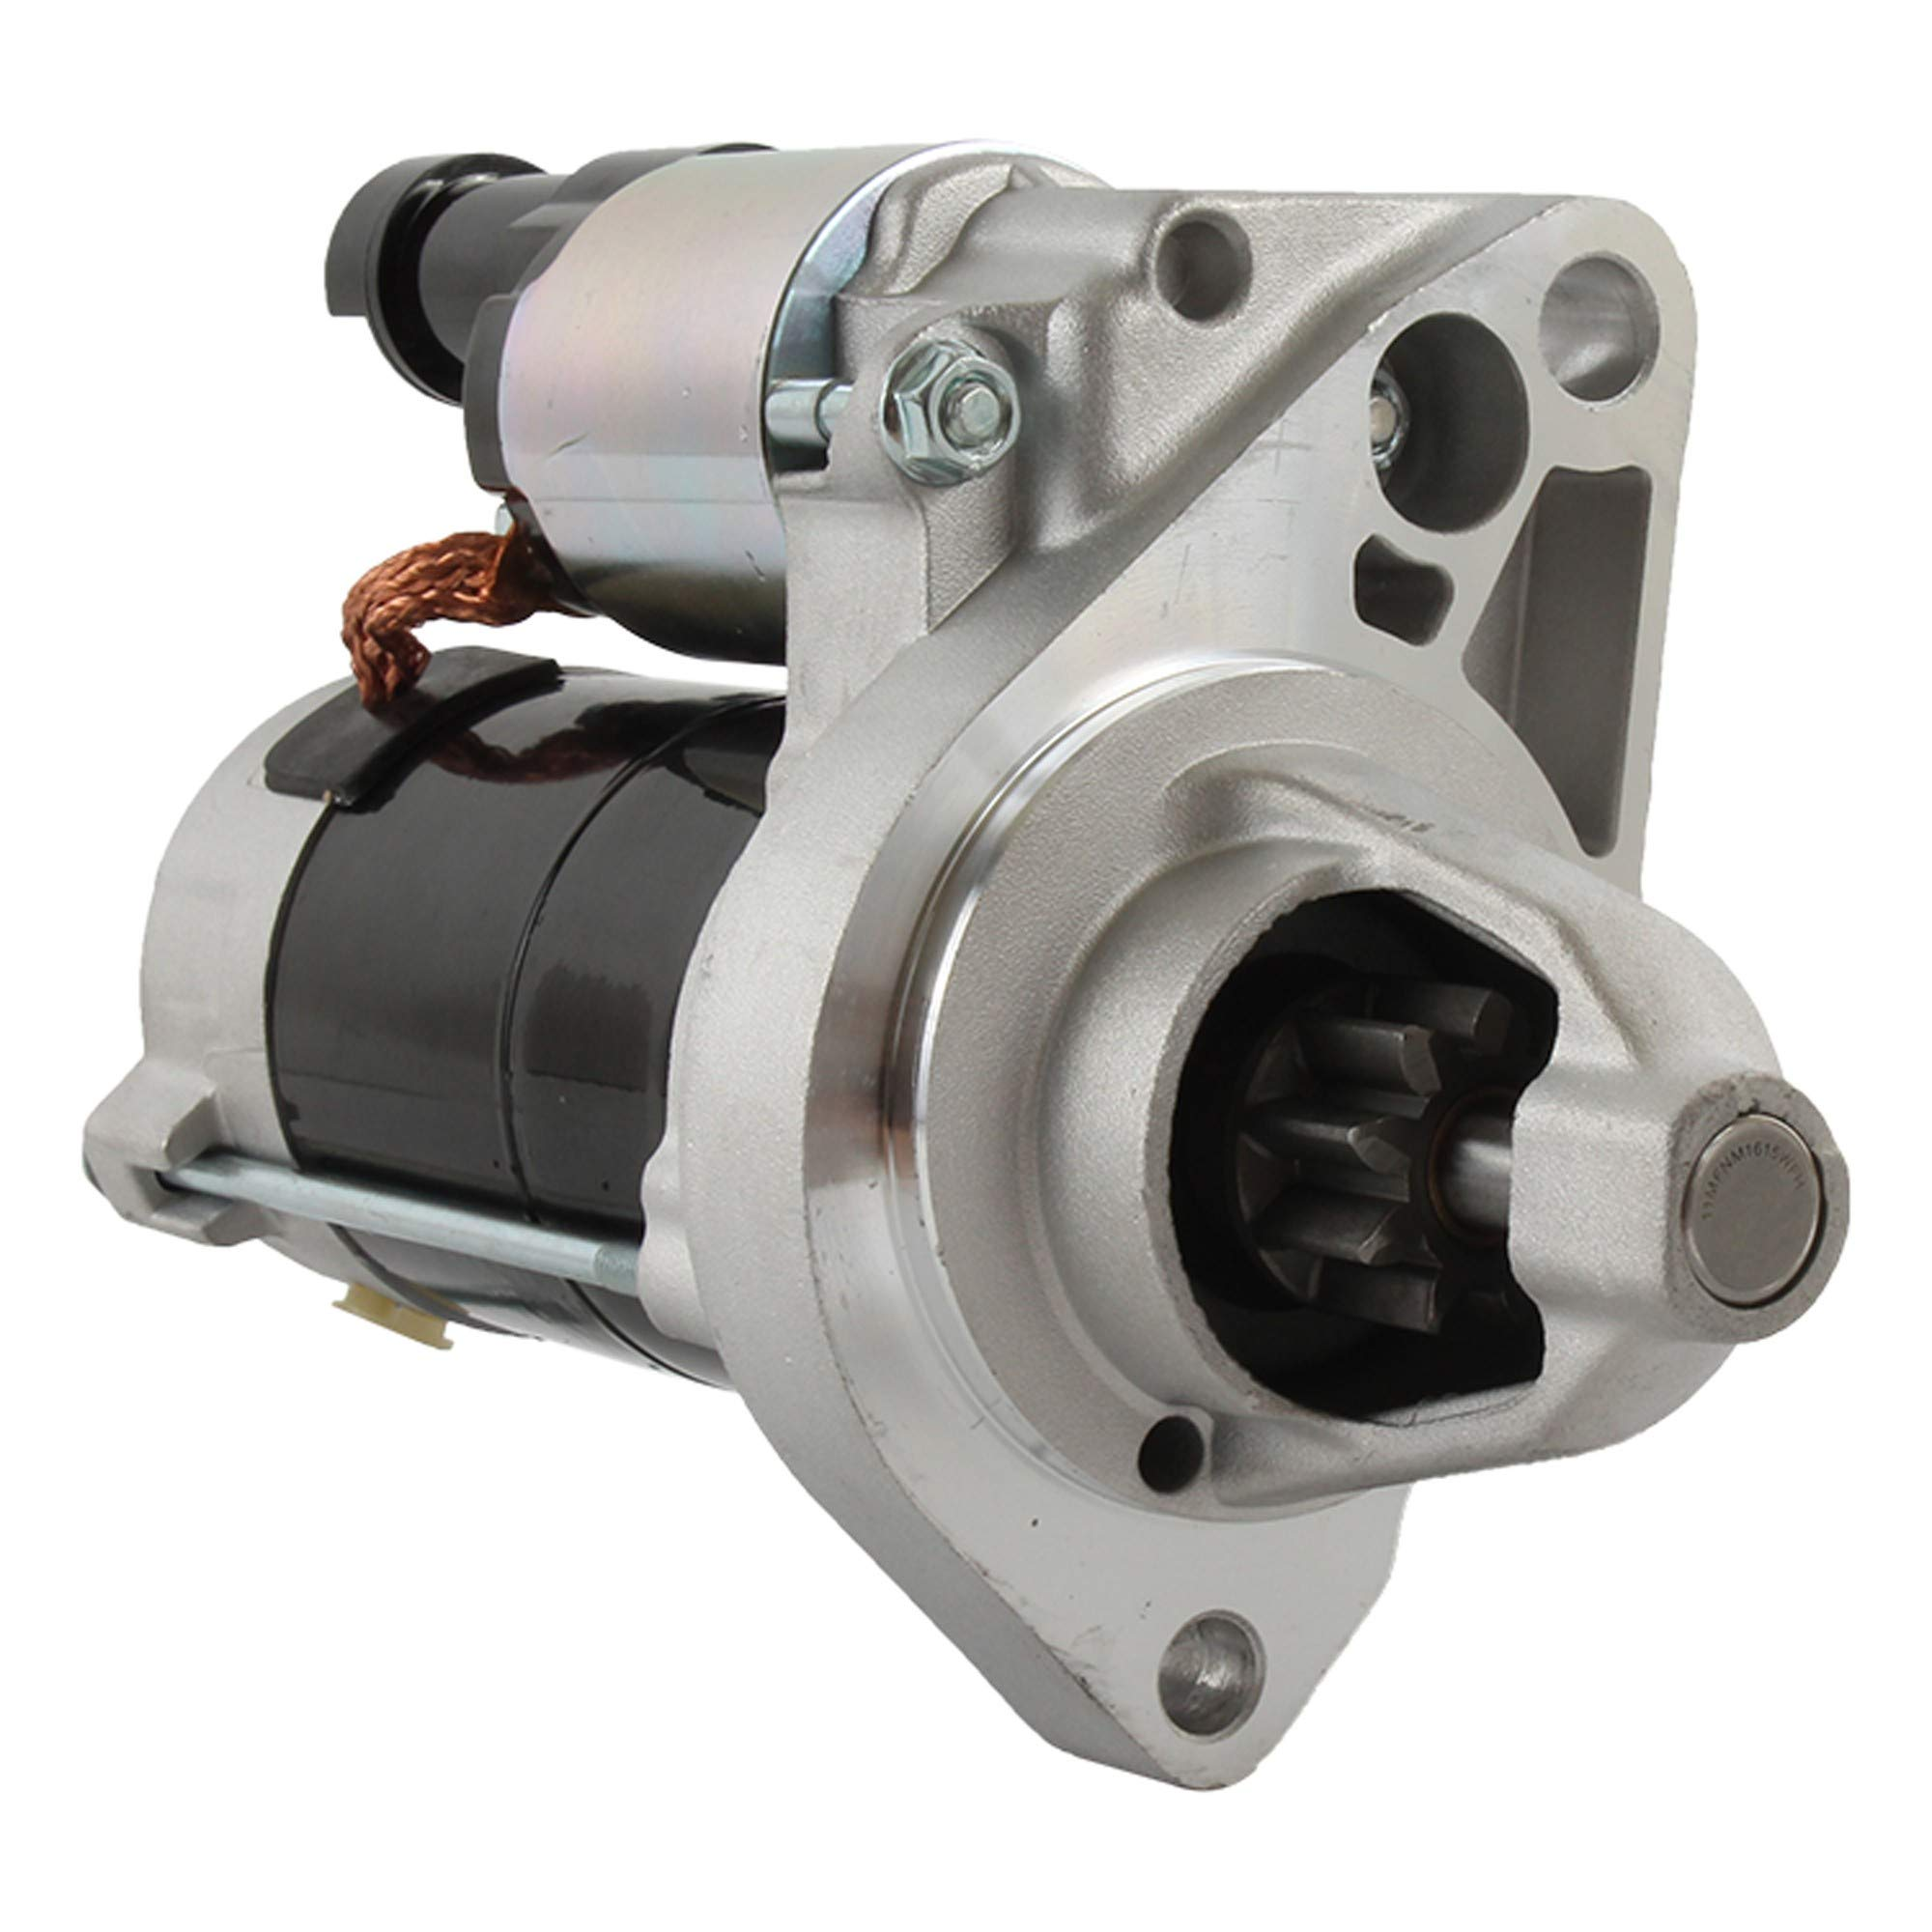 DB Electrical 410-52446 New Starter For 1.8L 1.8 W/ Mt Honda Civic 06 07 08 09 10 11 2006 2007 2008 2009 2010 2011 31200-RNA-A11 DS4R5 DS4RD 410-52446 17957 428000-3410 428000-5280